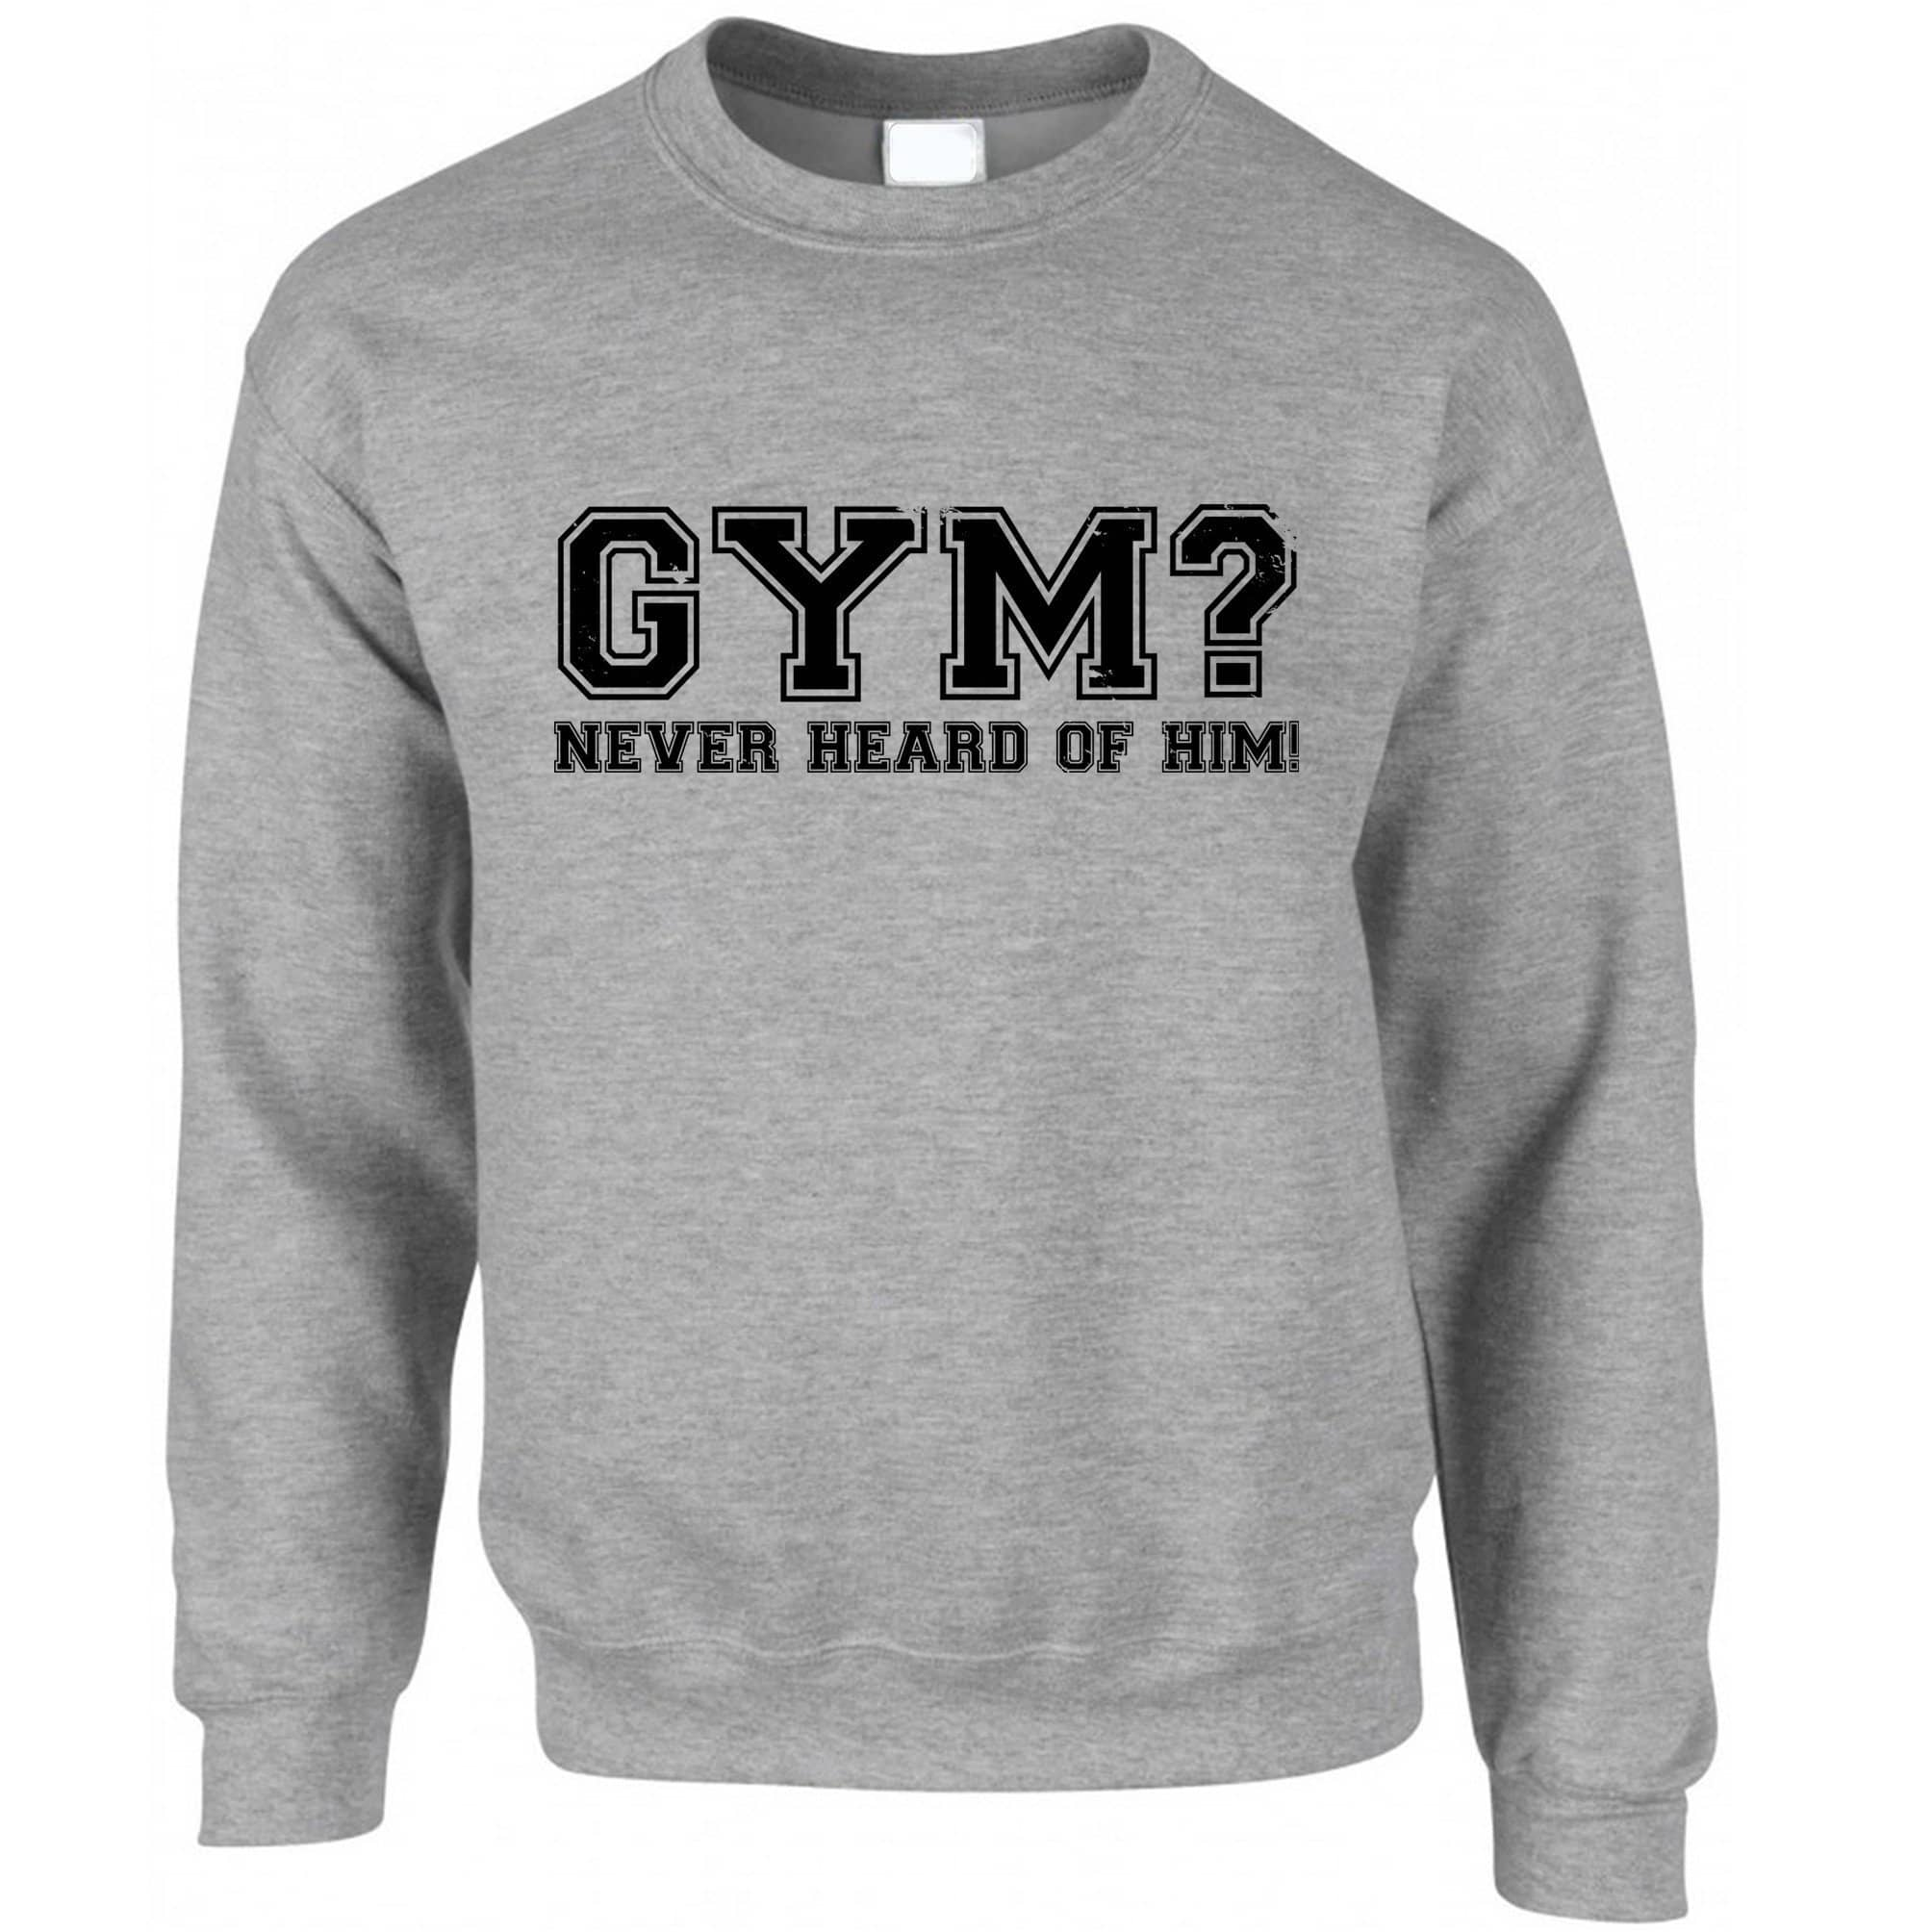 Novelty Lazy Jumper Gym? Never Heard Of Him Slogan Sweatshirt Sweater